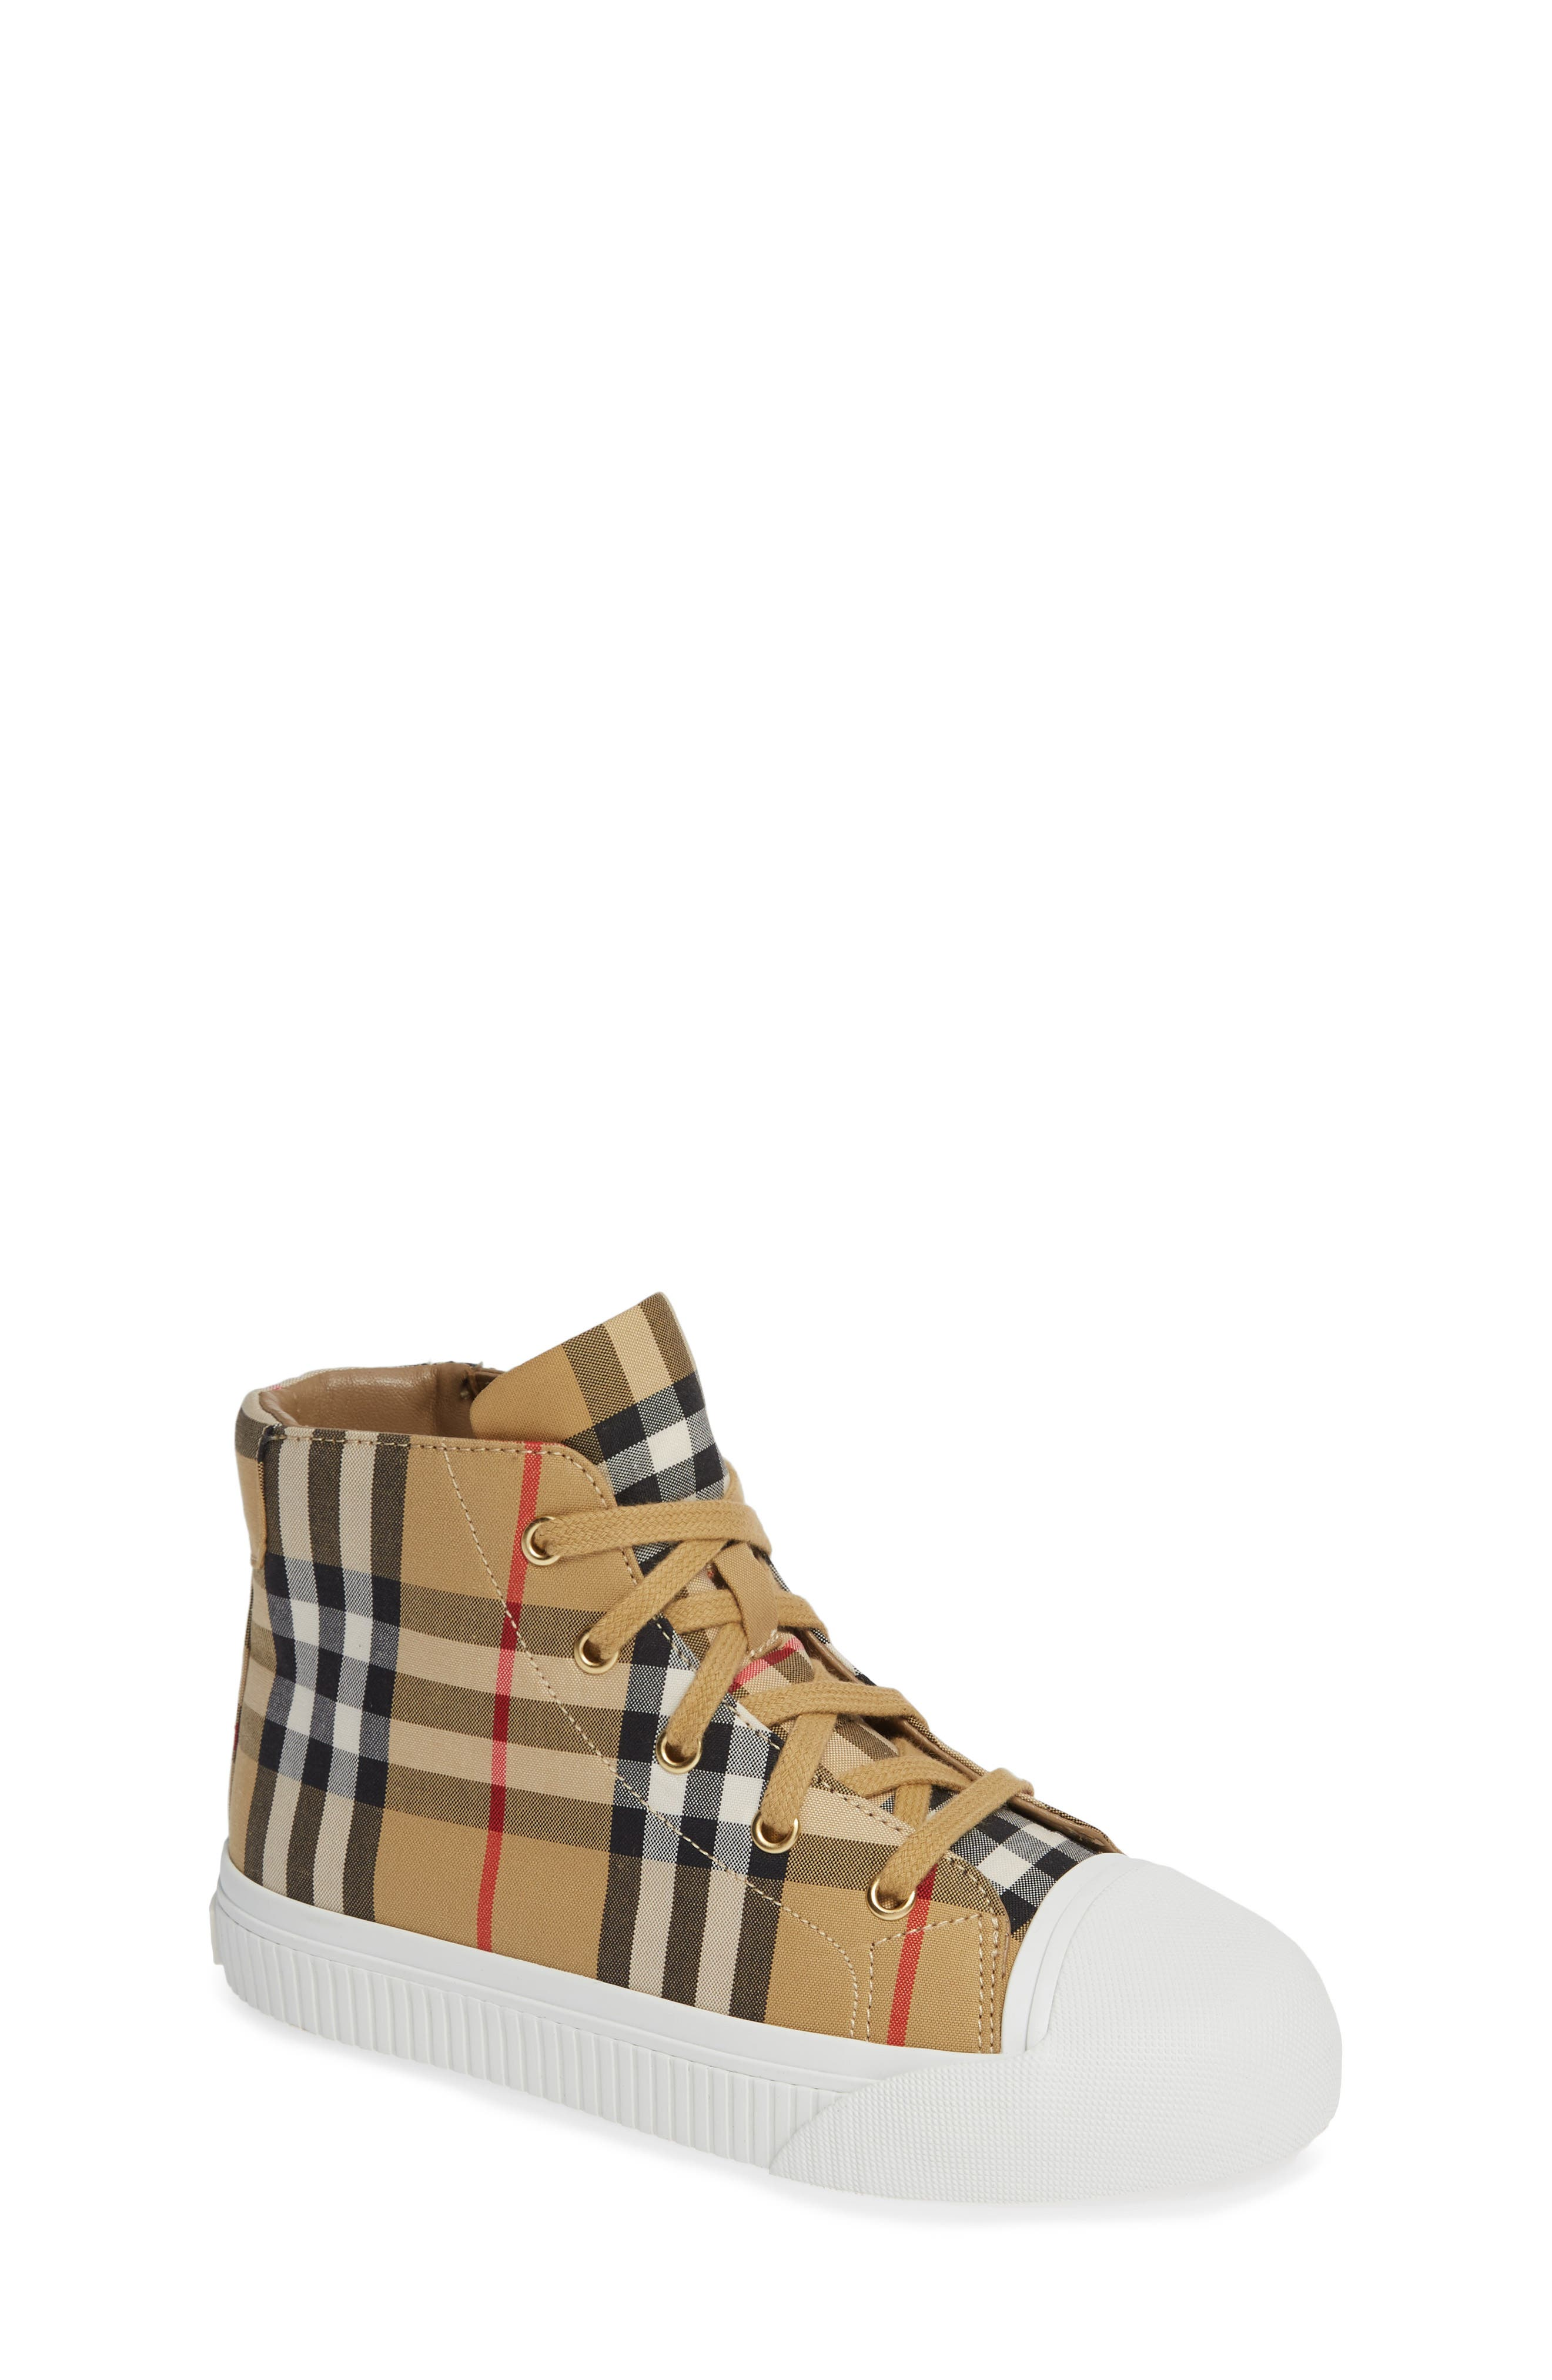 Belford High-Top Sneaker,                             Main thumbnail 1, color,                             ANTIQUE YELLOW/ OPTIC WHITE